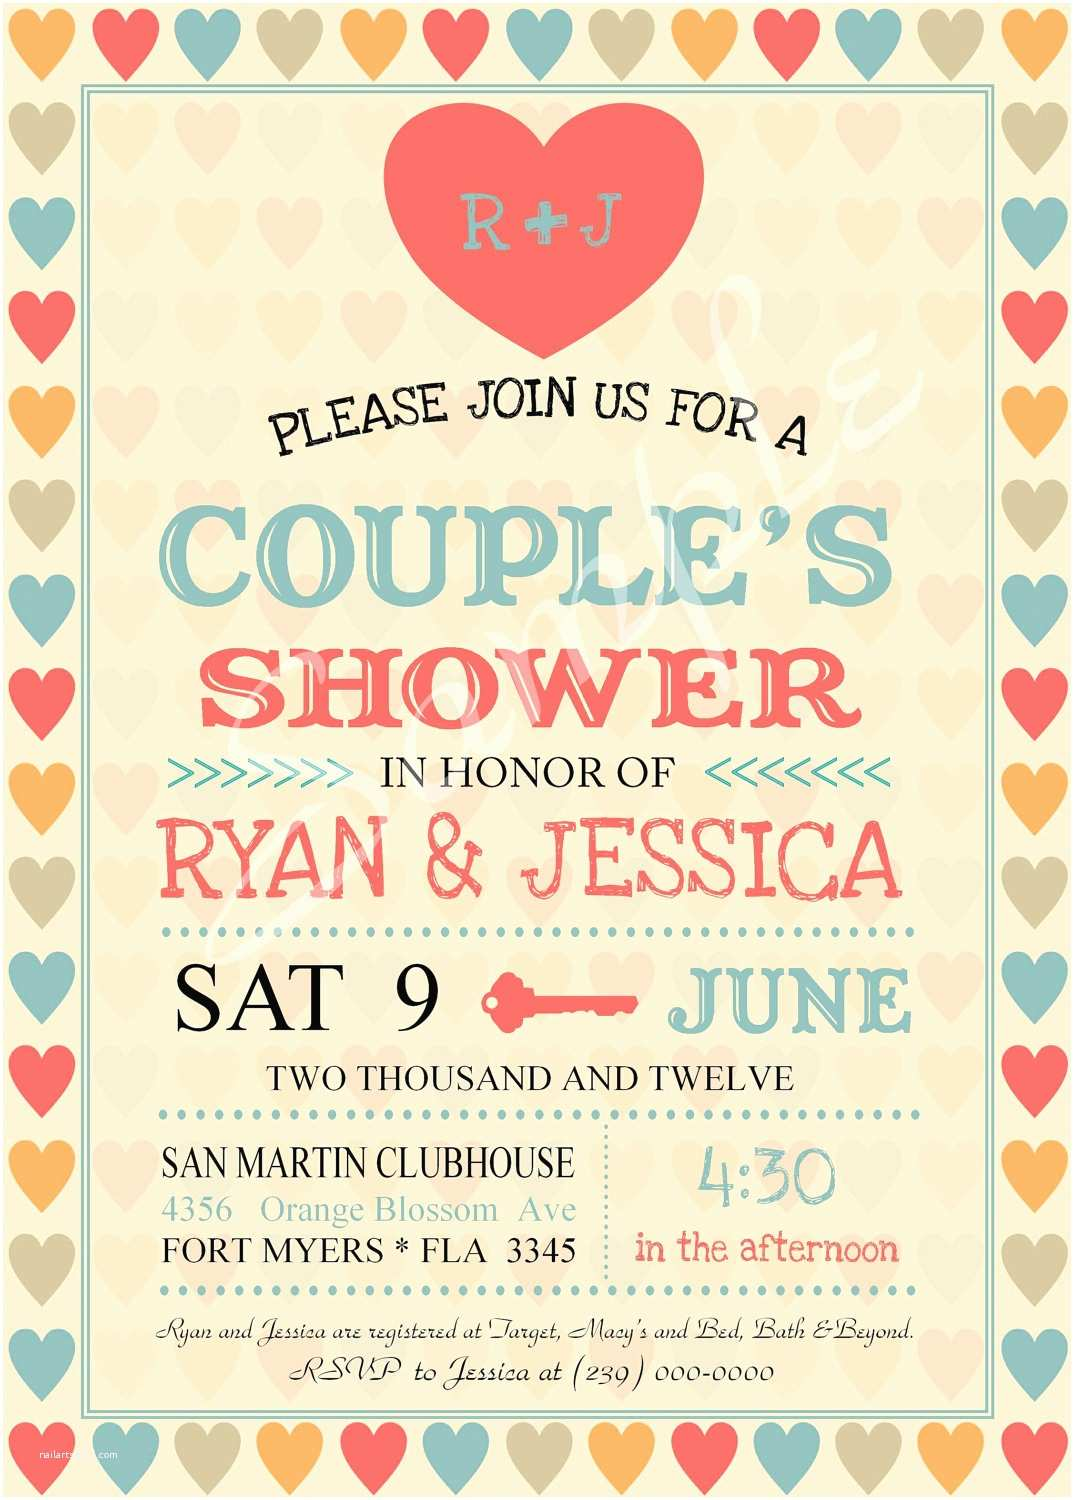 Wedding Invitation with Photos Of Couples Free Wedding Invitation with S Couples Free Wedding